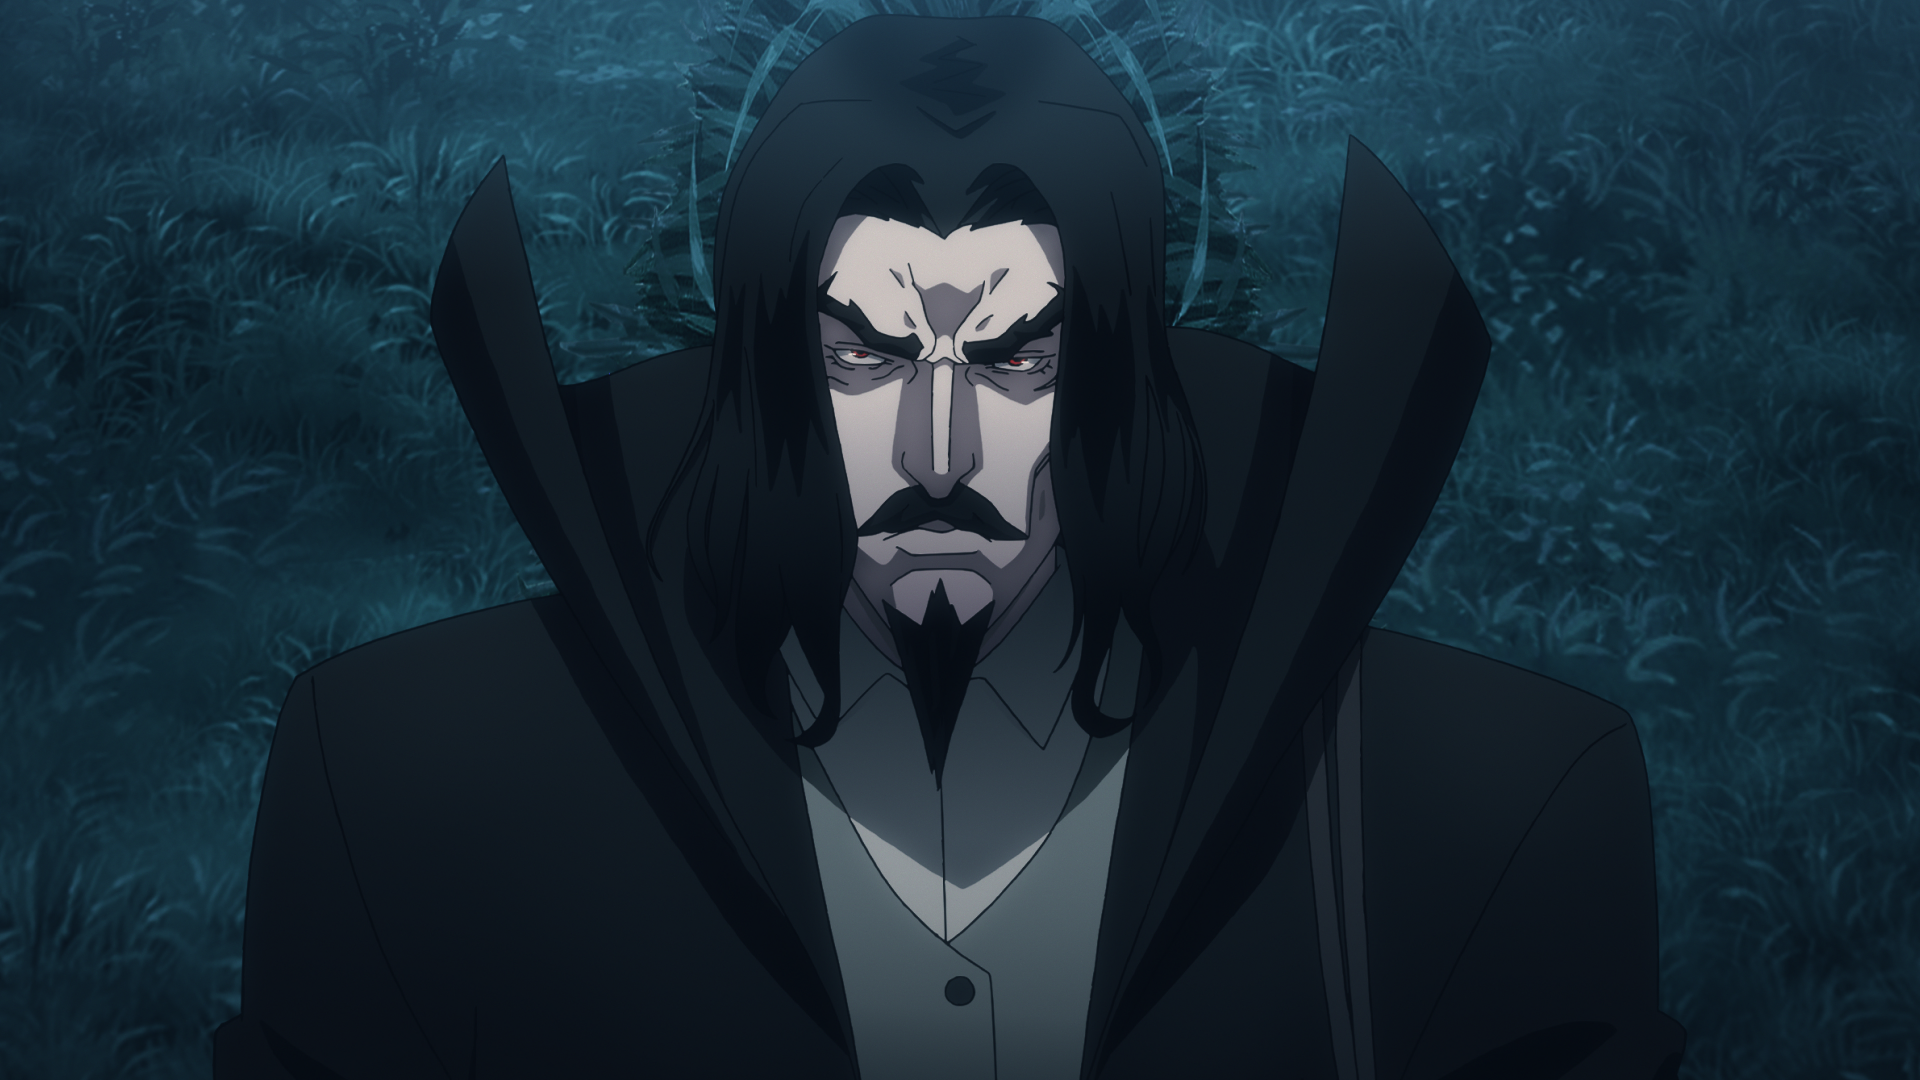 Castlevania Review Netflix S Video Game Adaptation Has Bite Collider